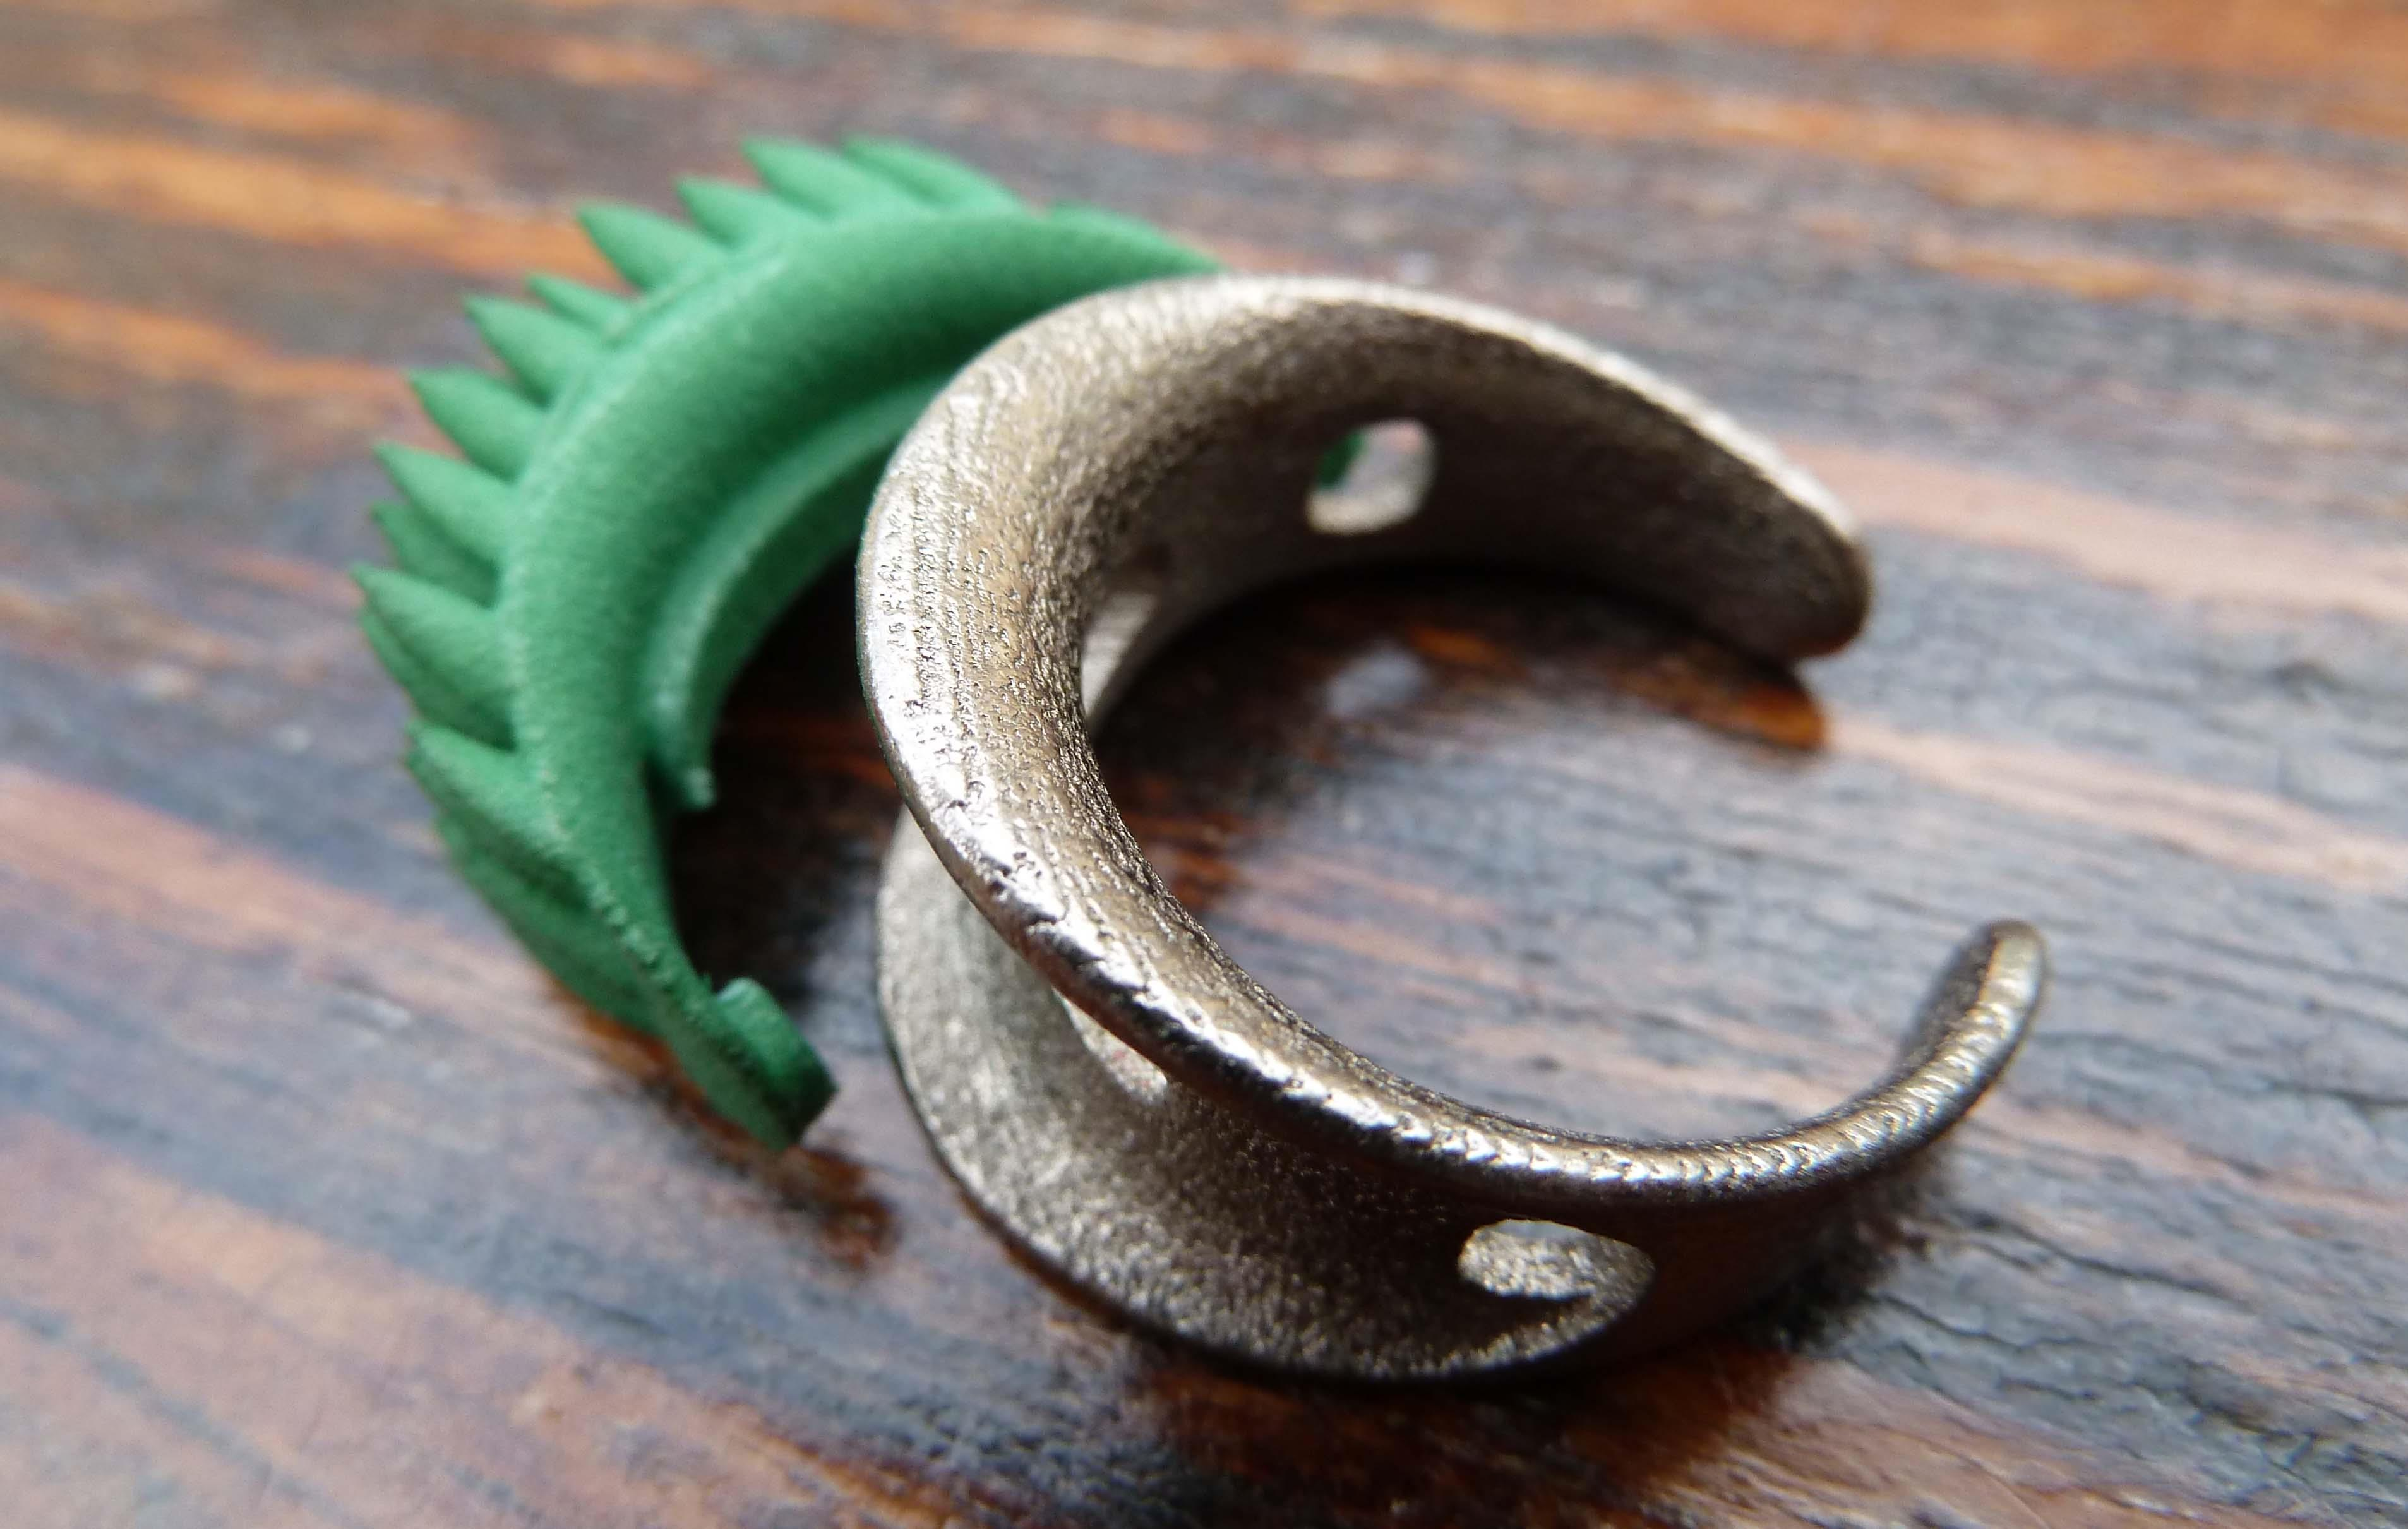 Selling An Enement Ring | Grass Element Clips Onto Swap Ring Tallal Product Development